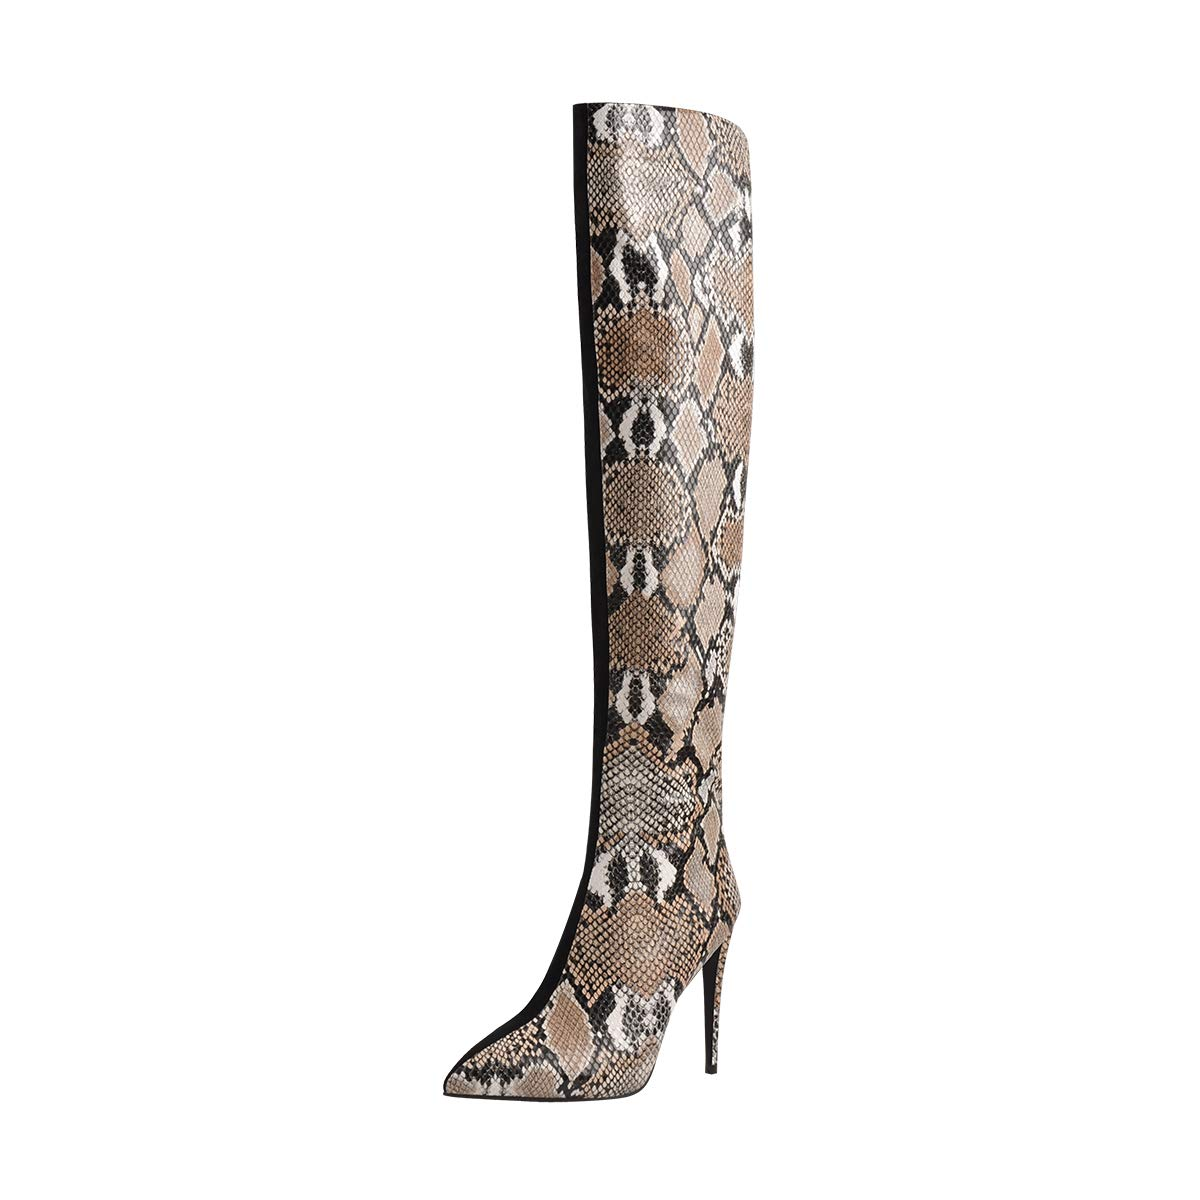 Onlymaker Women's Snake Print Patchwork Pointed Toe Stiletto Heel Two Toned Side Zipper Over The Knee High Boots US 8 Black by Onlymaker